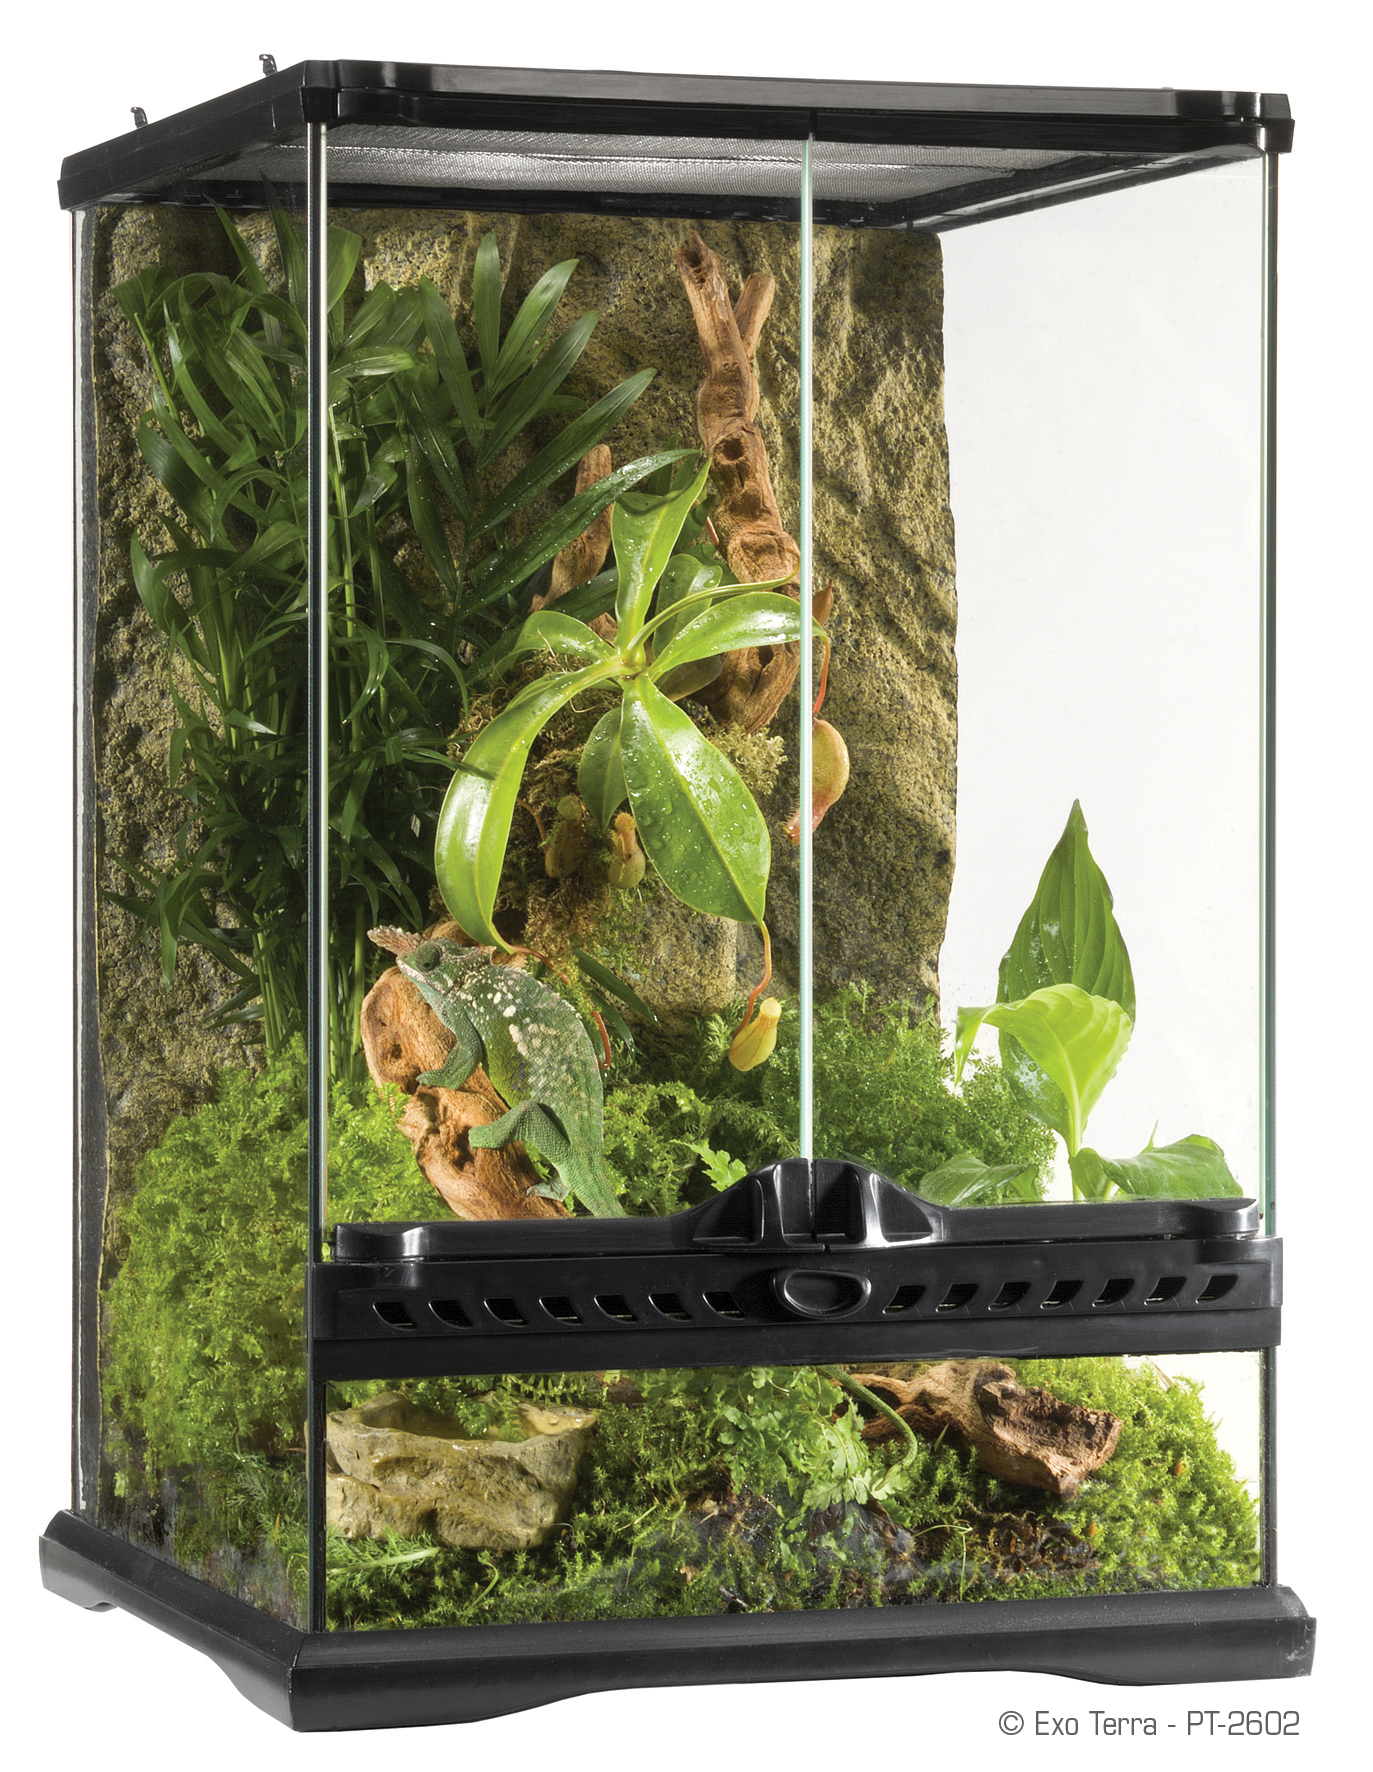 exo terra natural terrarium mini advanced reptile habitat. Black Bedroom Furniture Sets. Home Design Ideas